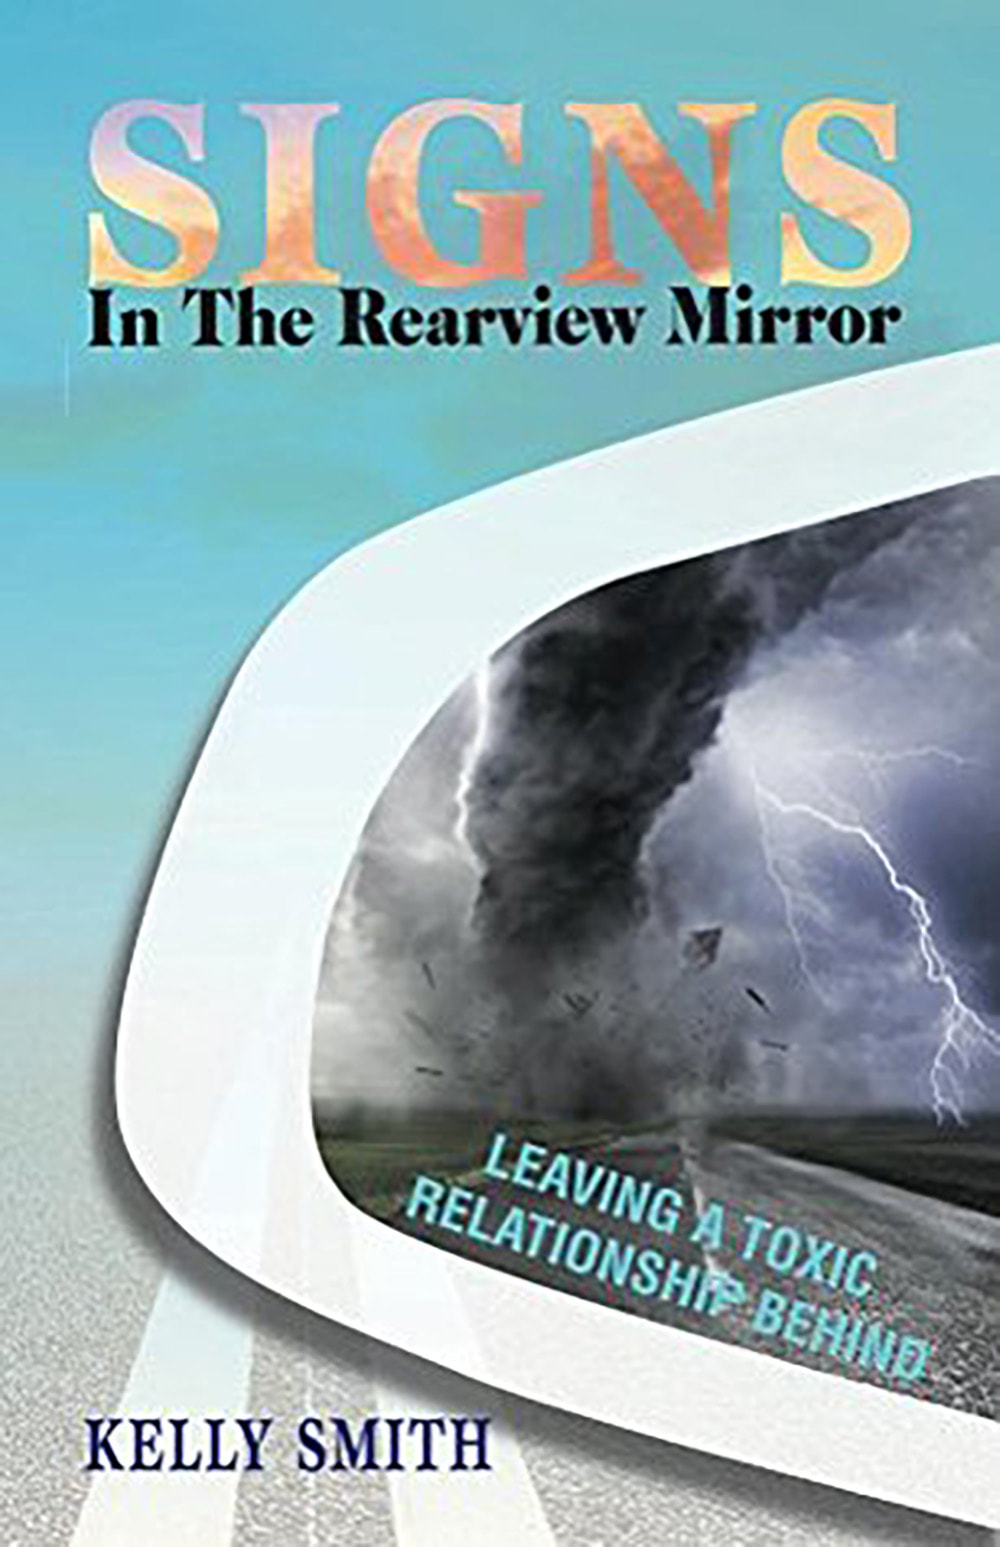 SIGNS IN THE REARVIEW MIRROR by Kelly Smith